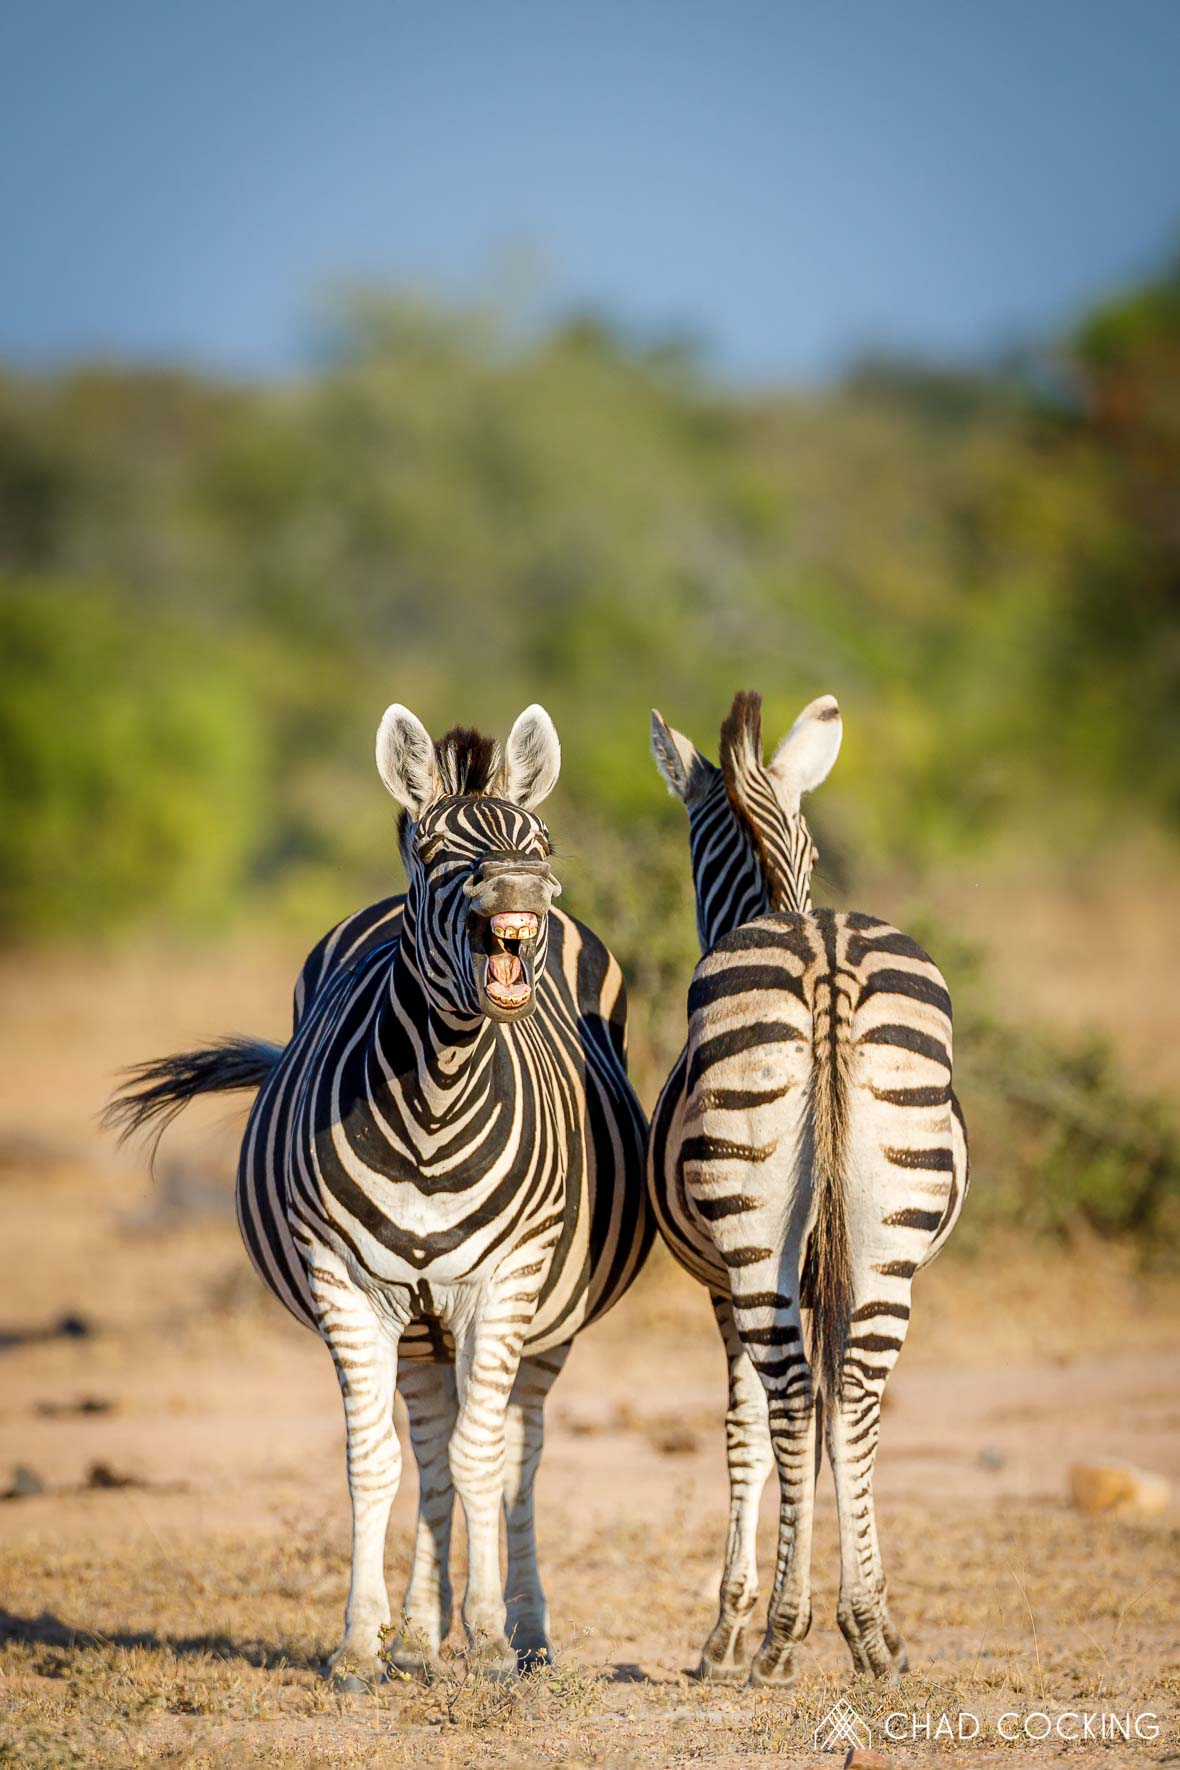 Tanda Tula - yawning zebra in the Greater Kruger, South Africa